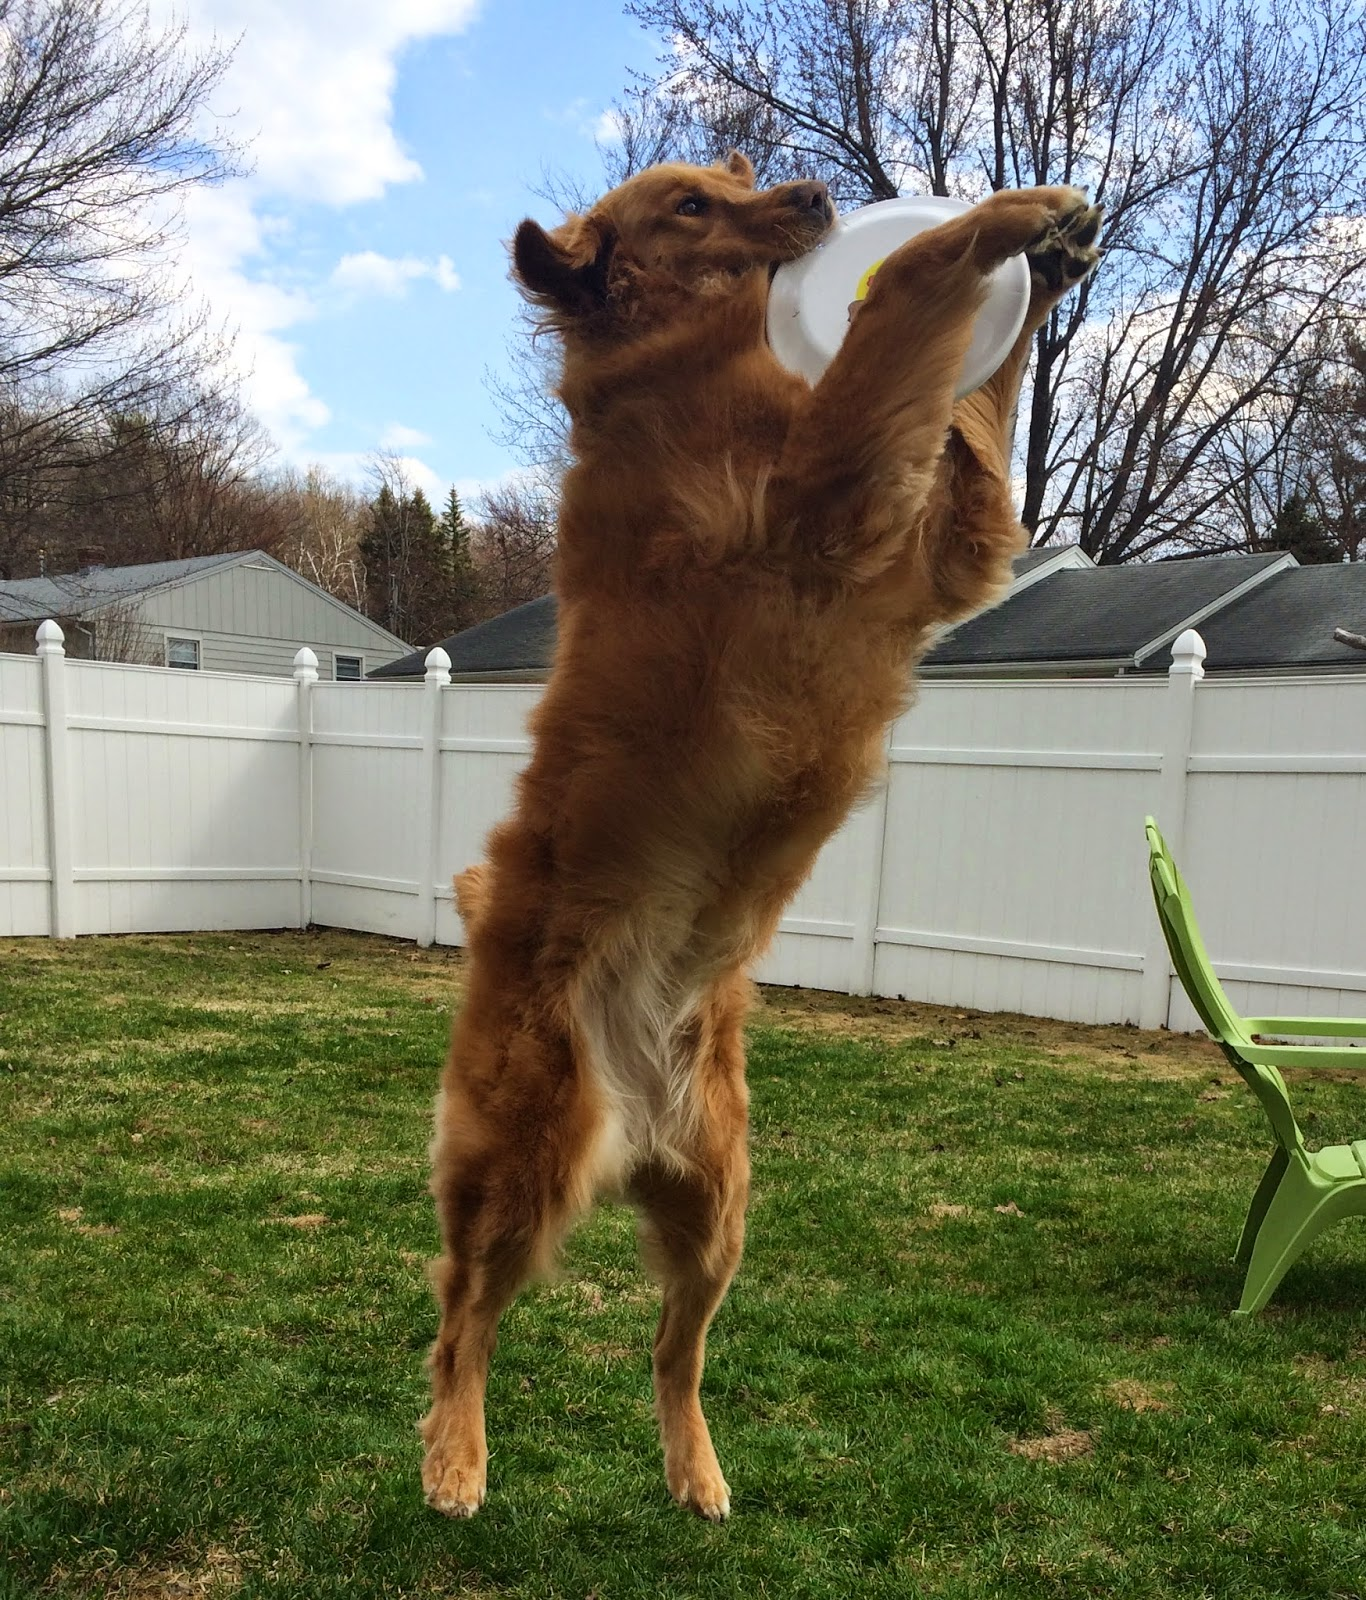 golden retriever catching frisbee